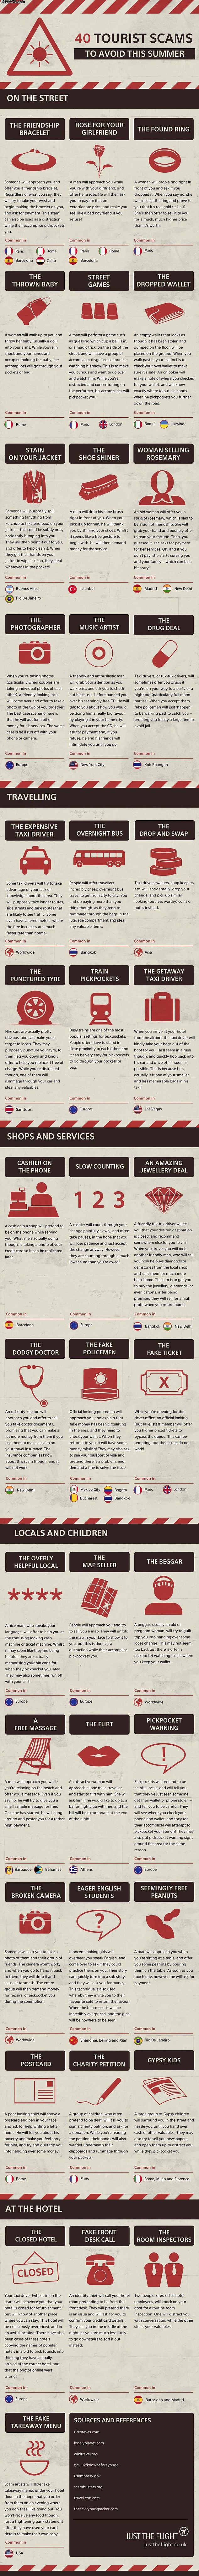 40 Common Tourist Scams